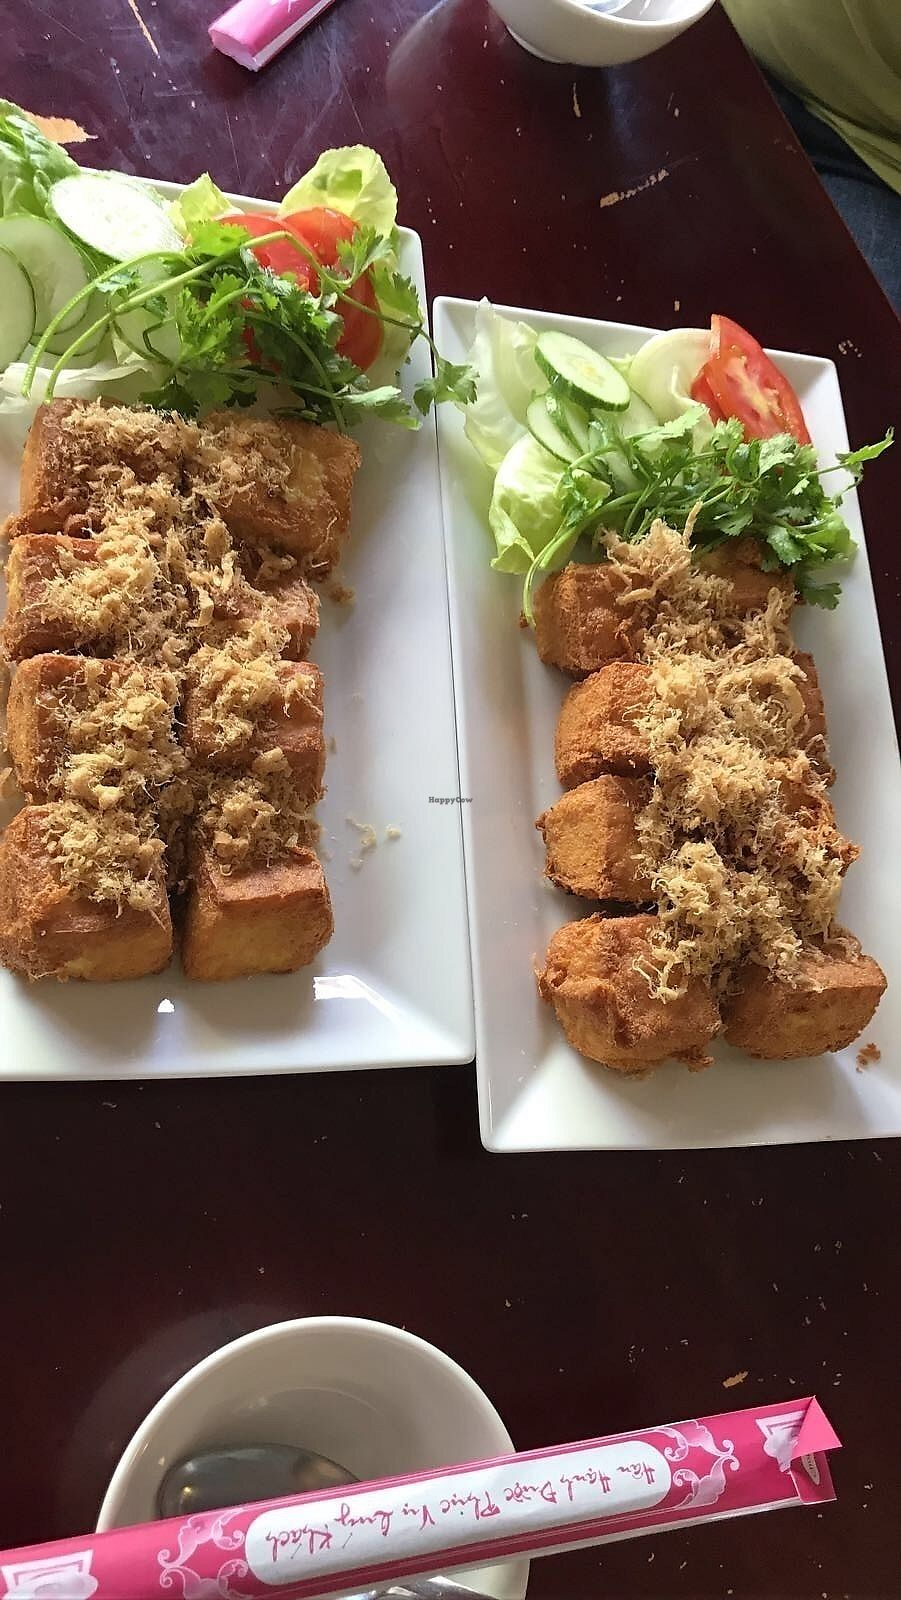 """Photo of Thanh Giac Cafe  by <a href=""""/members/profile/Antran"""">Antran</a> <br/>Home made tofu <br/> October 9, 2017  - <a href='/contact/abuse/image/102308/313602'>Report</a>"""